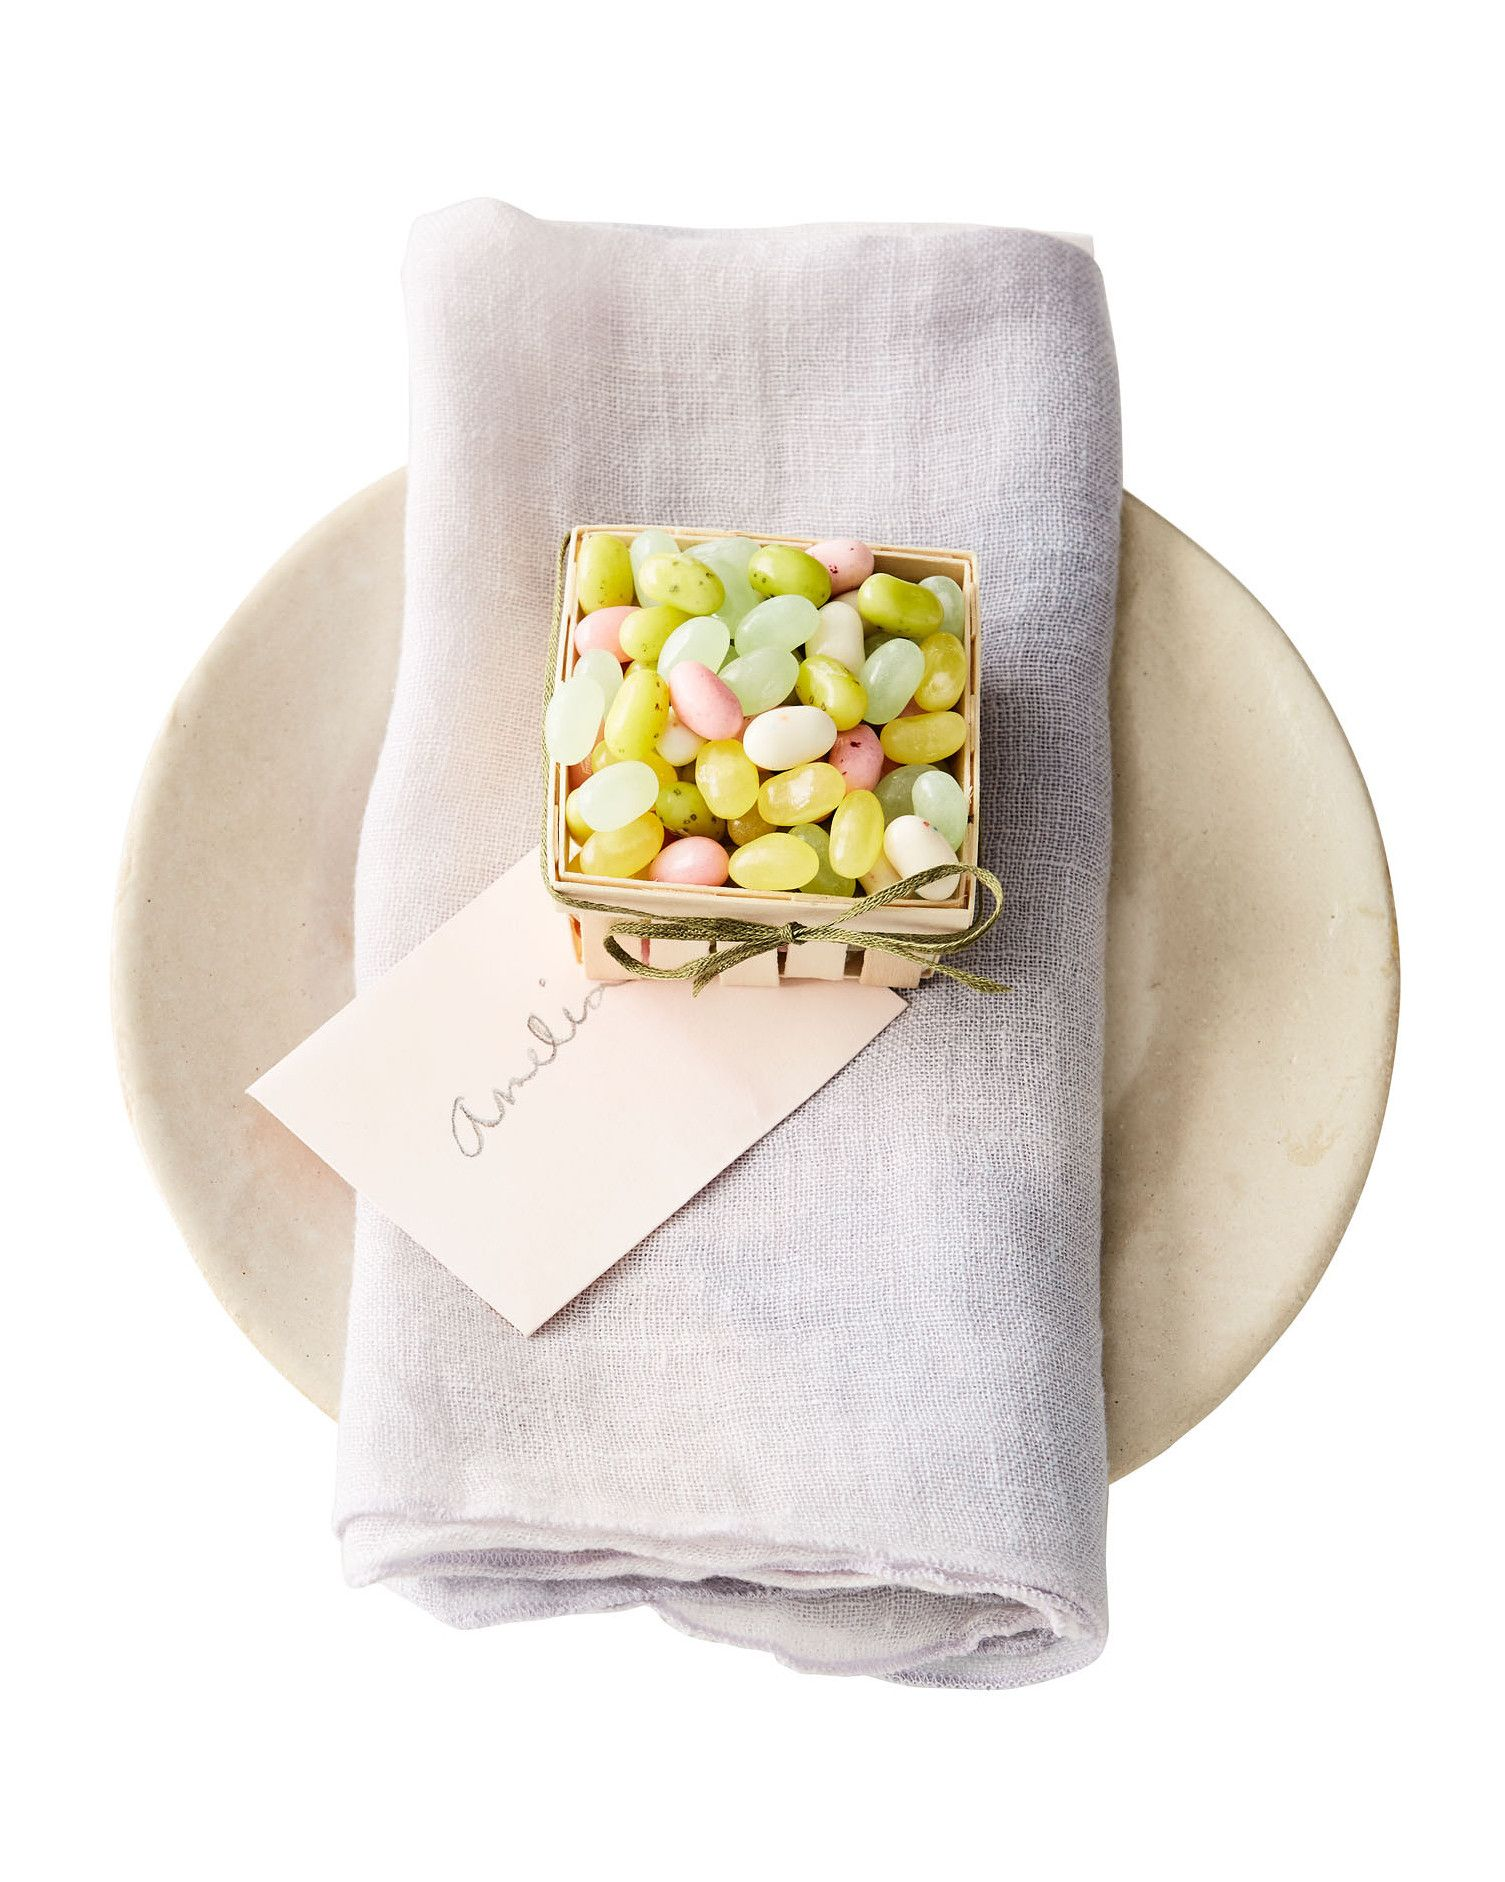 Miniature easter candy basket easter candy berry baskets and easter miniature easter candy basket martha stewart a tisket a tasket a mini berry basket put one at each seat with a name tag to take care of your dcor negle Choice Image